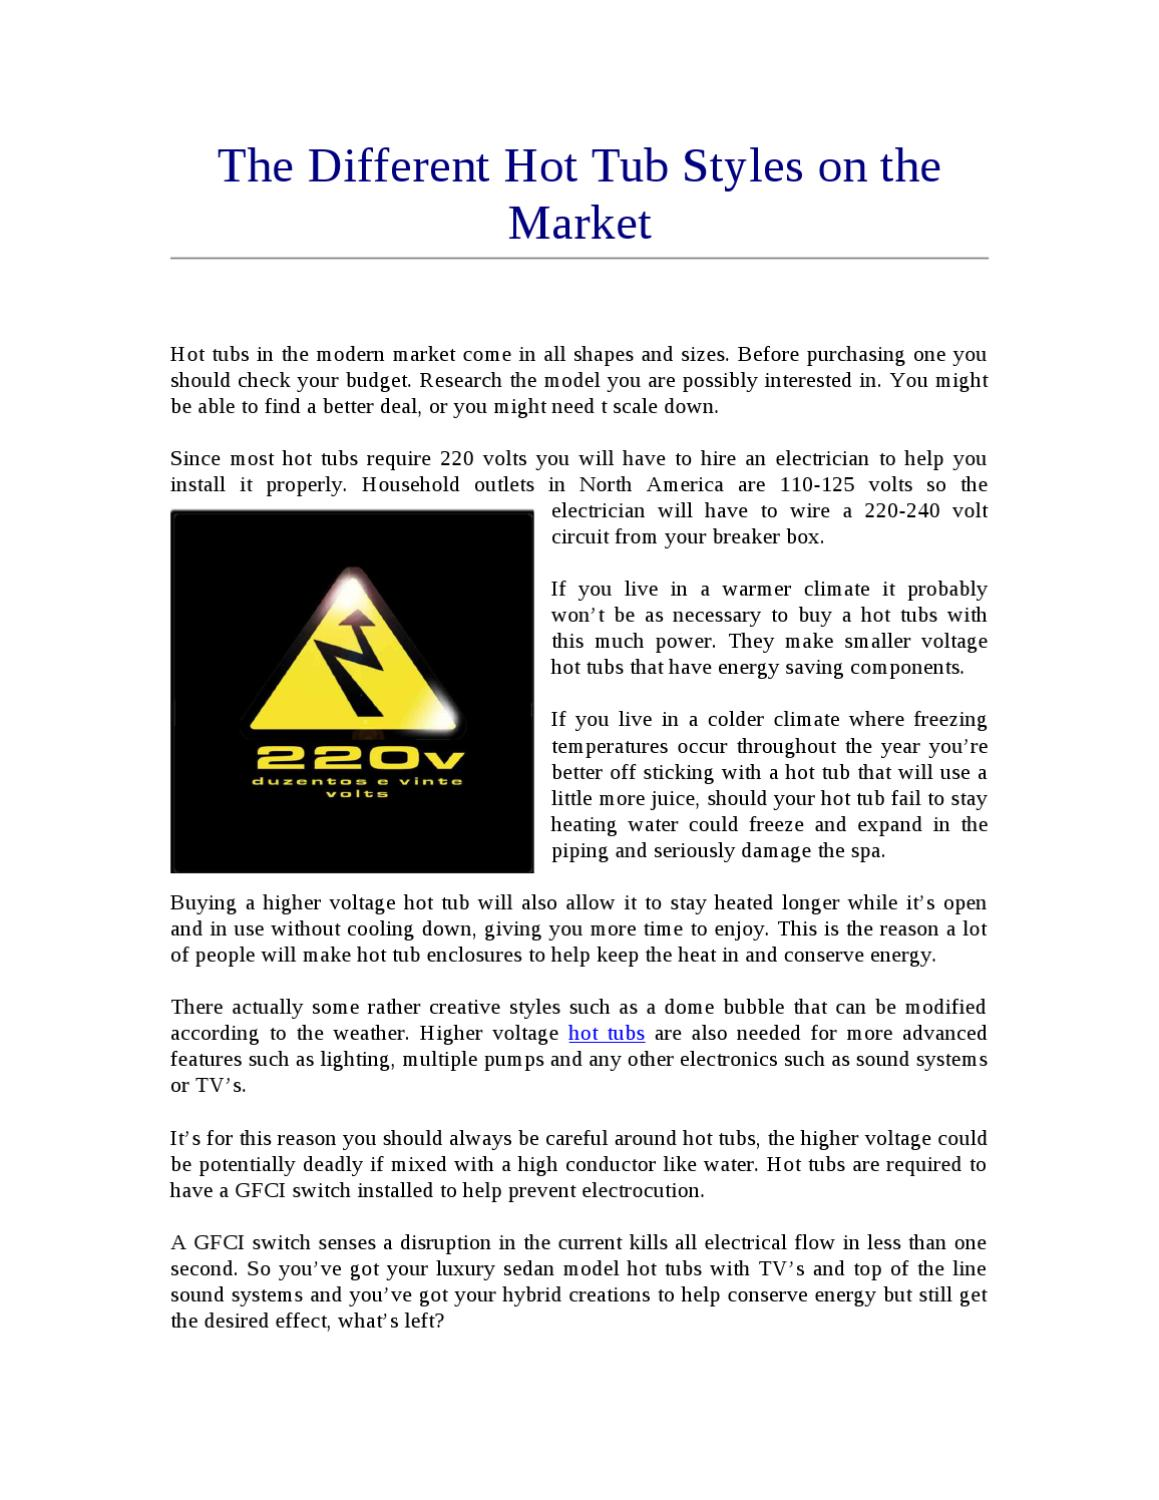 The Different Hot Tub Styles on the Market by troy kaptur - issuu